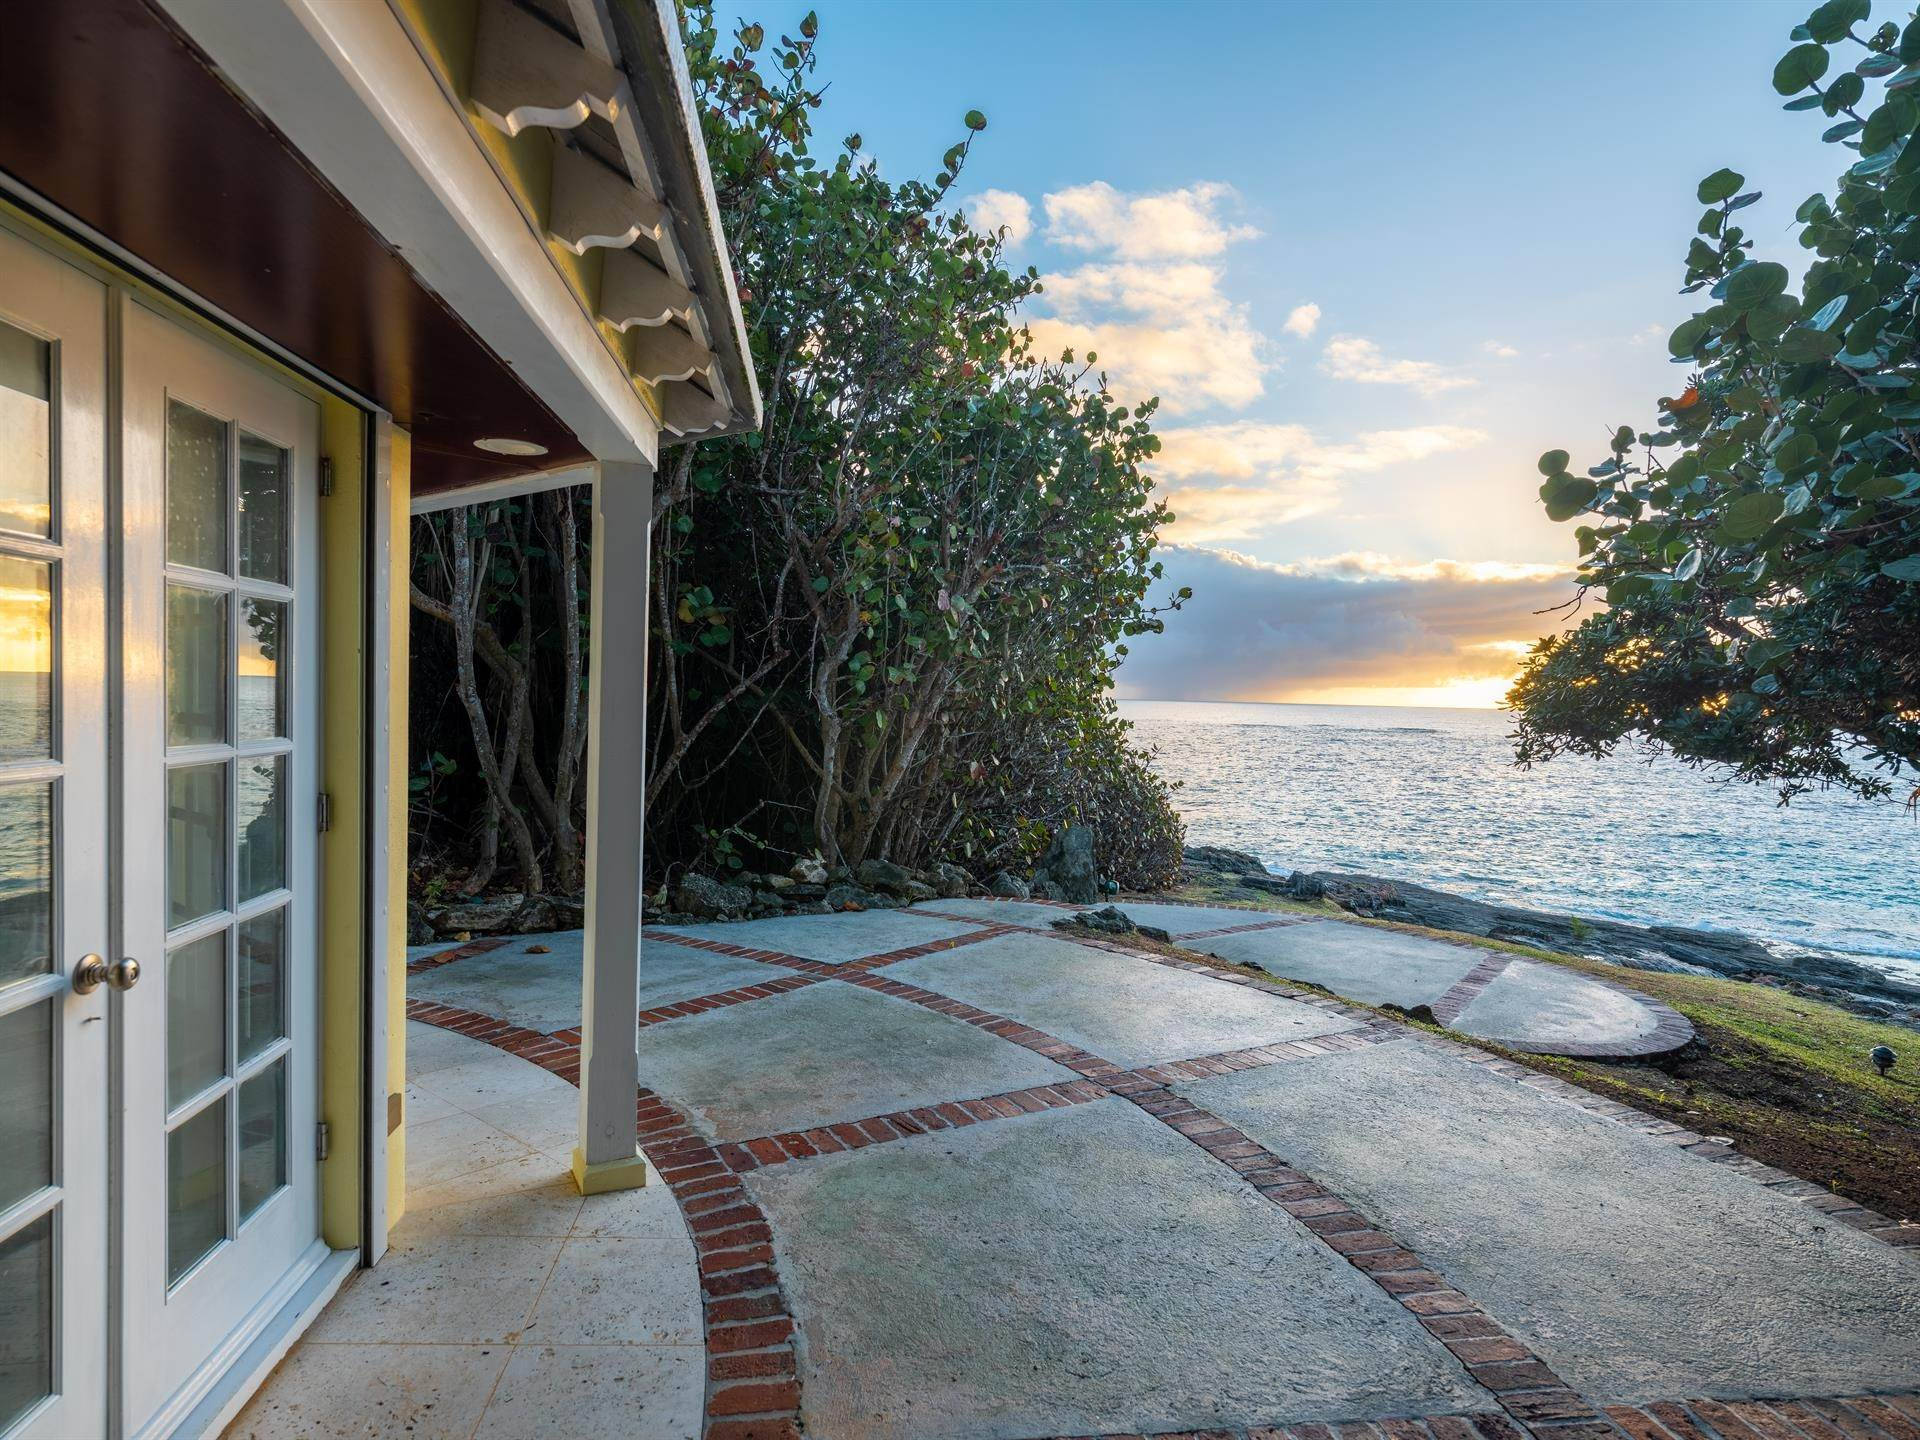 38. Waterfront Property for Sale at Agapanthus On Grape Bay Agapanthus On Grape Bay, 11 Inglewood Lane,Bermuda – Sinclair Realty